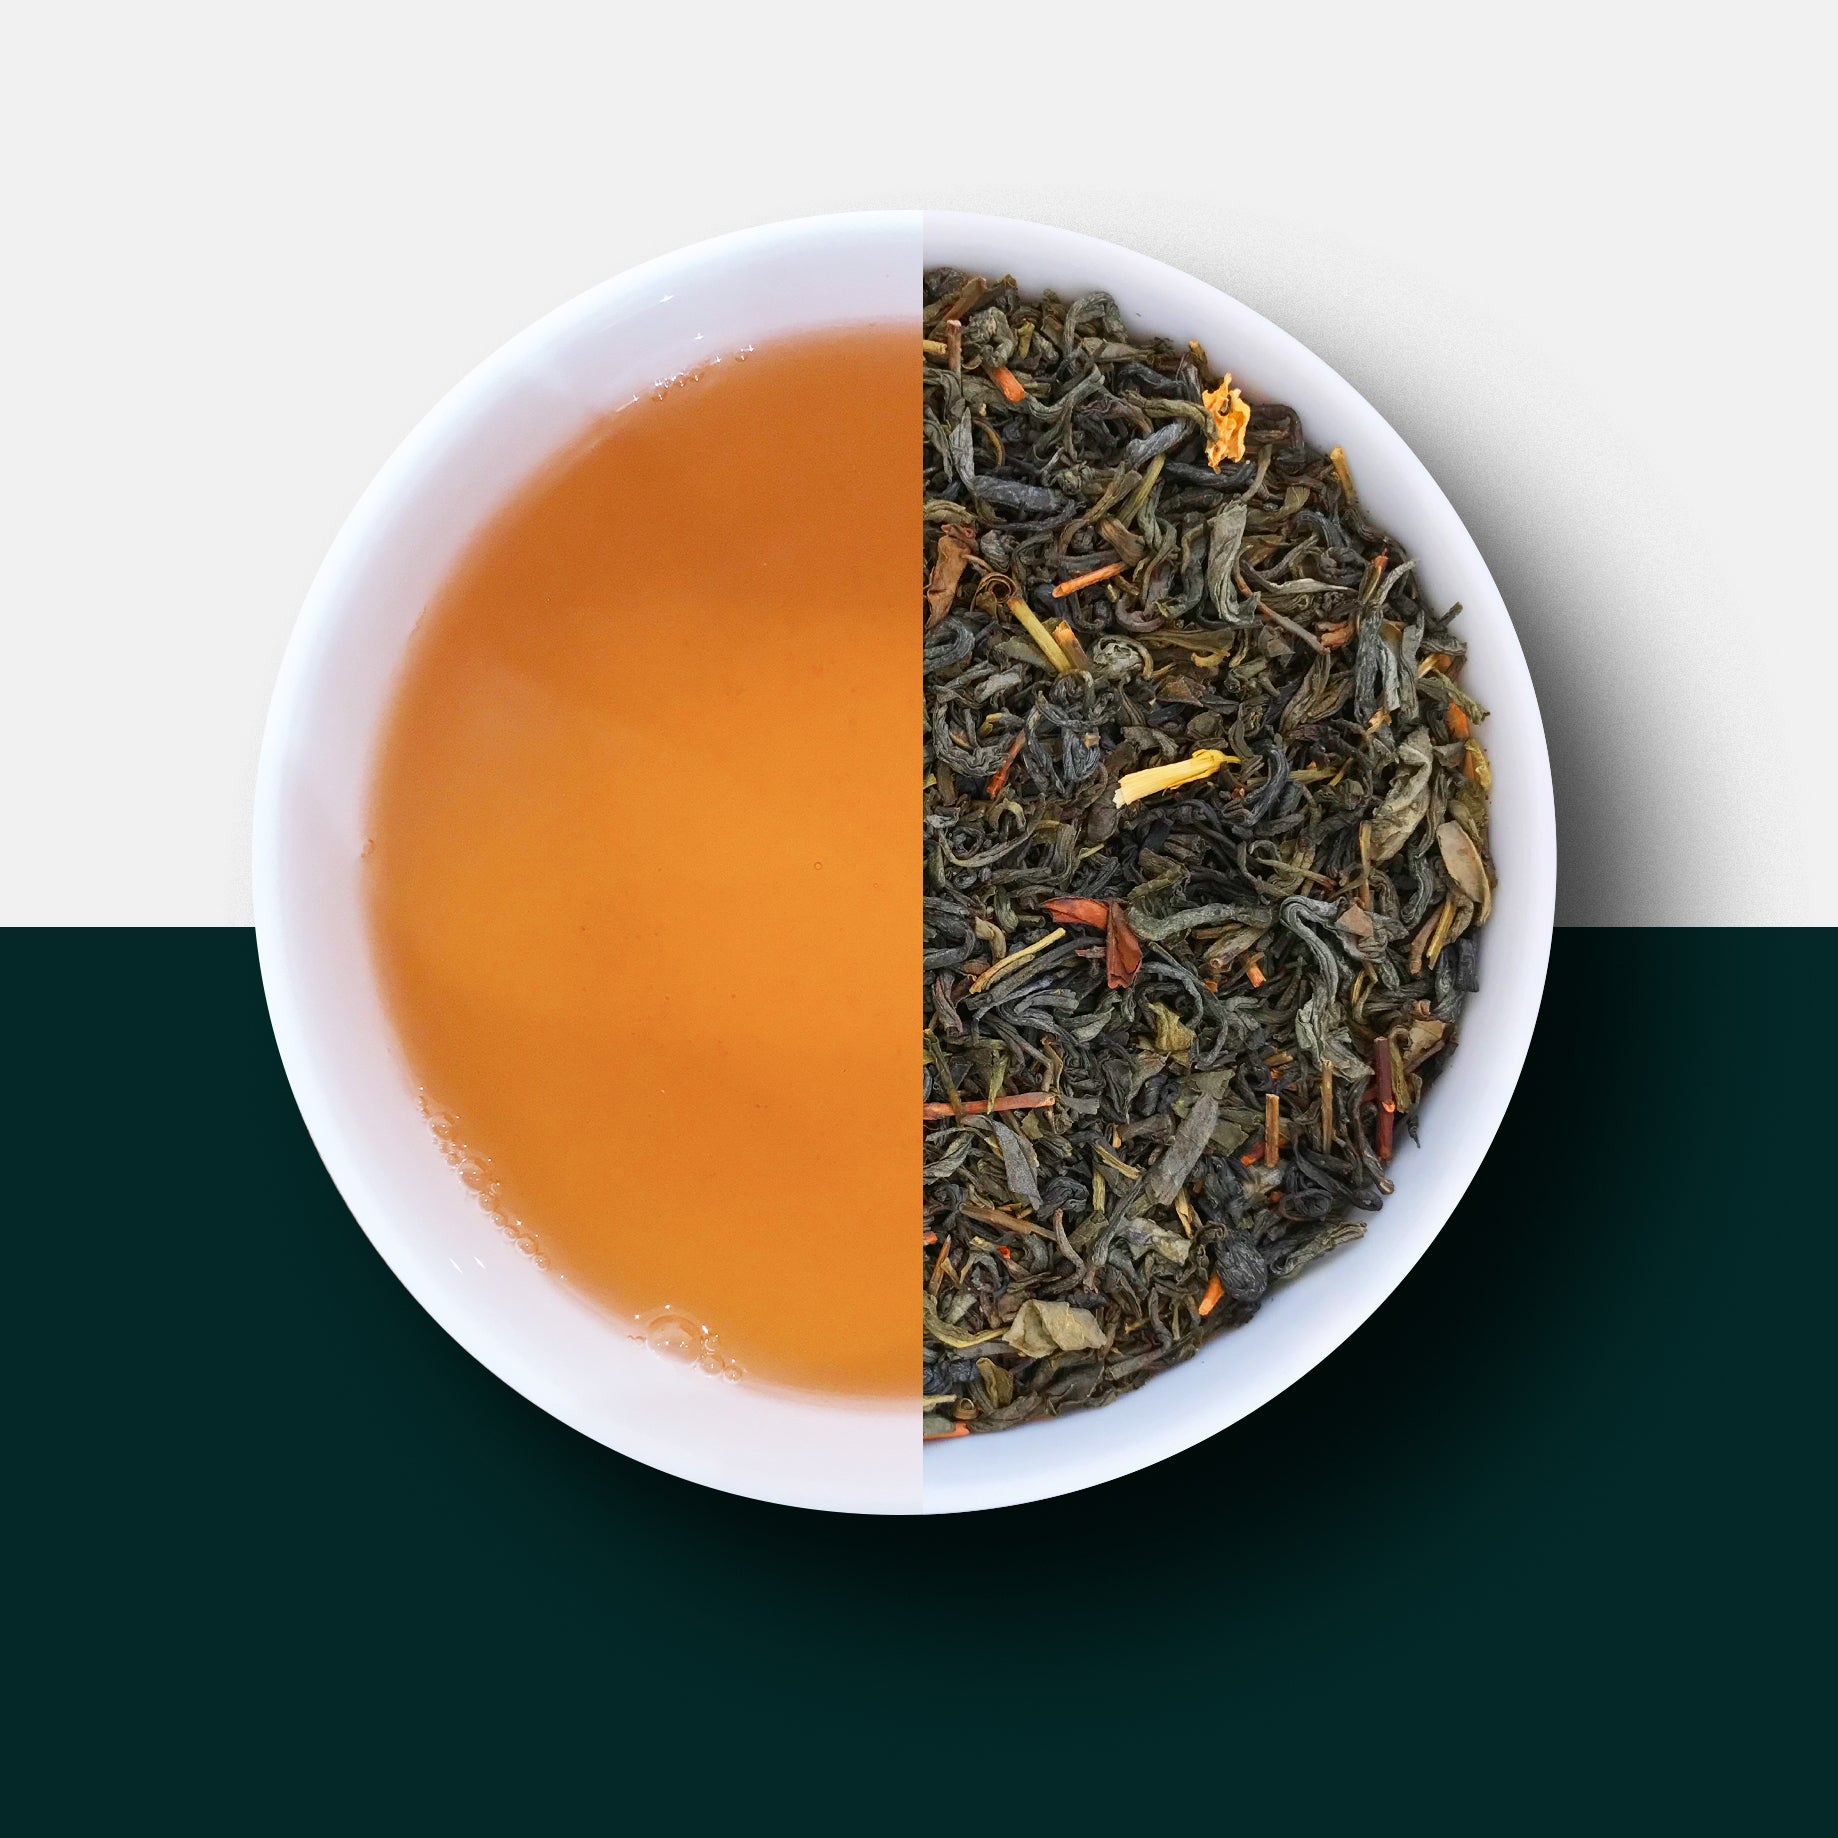 Jasmine Tea - Loose Leaf Tea and Liquor